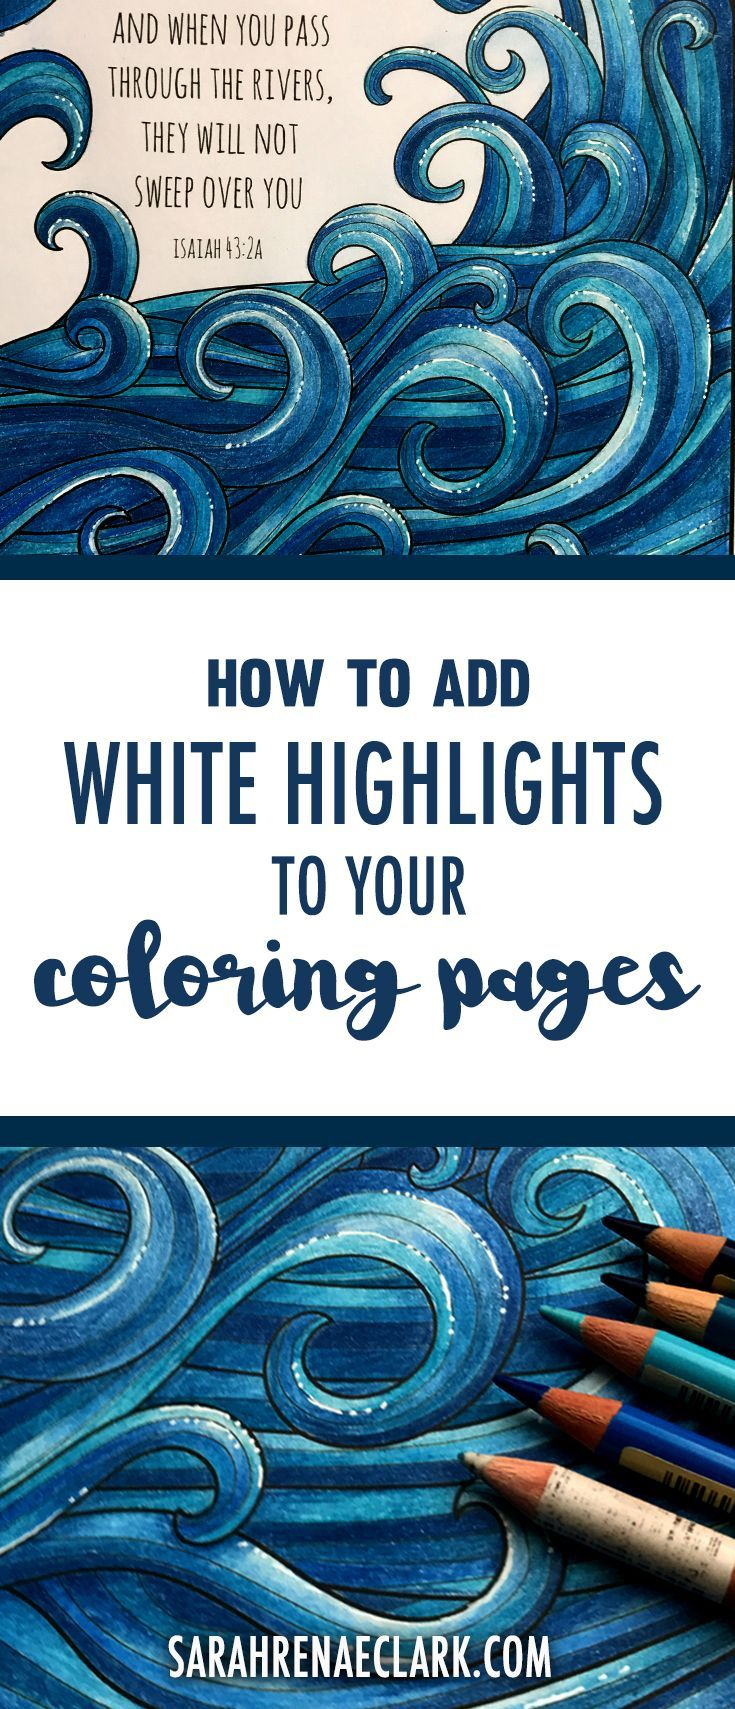 How to add white highlights to your coloring pages